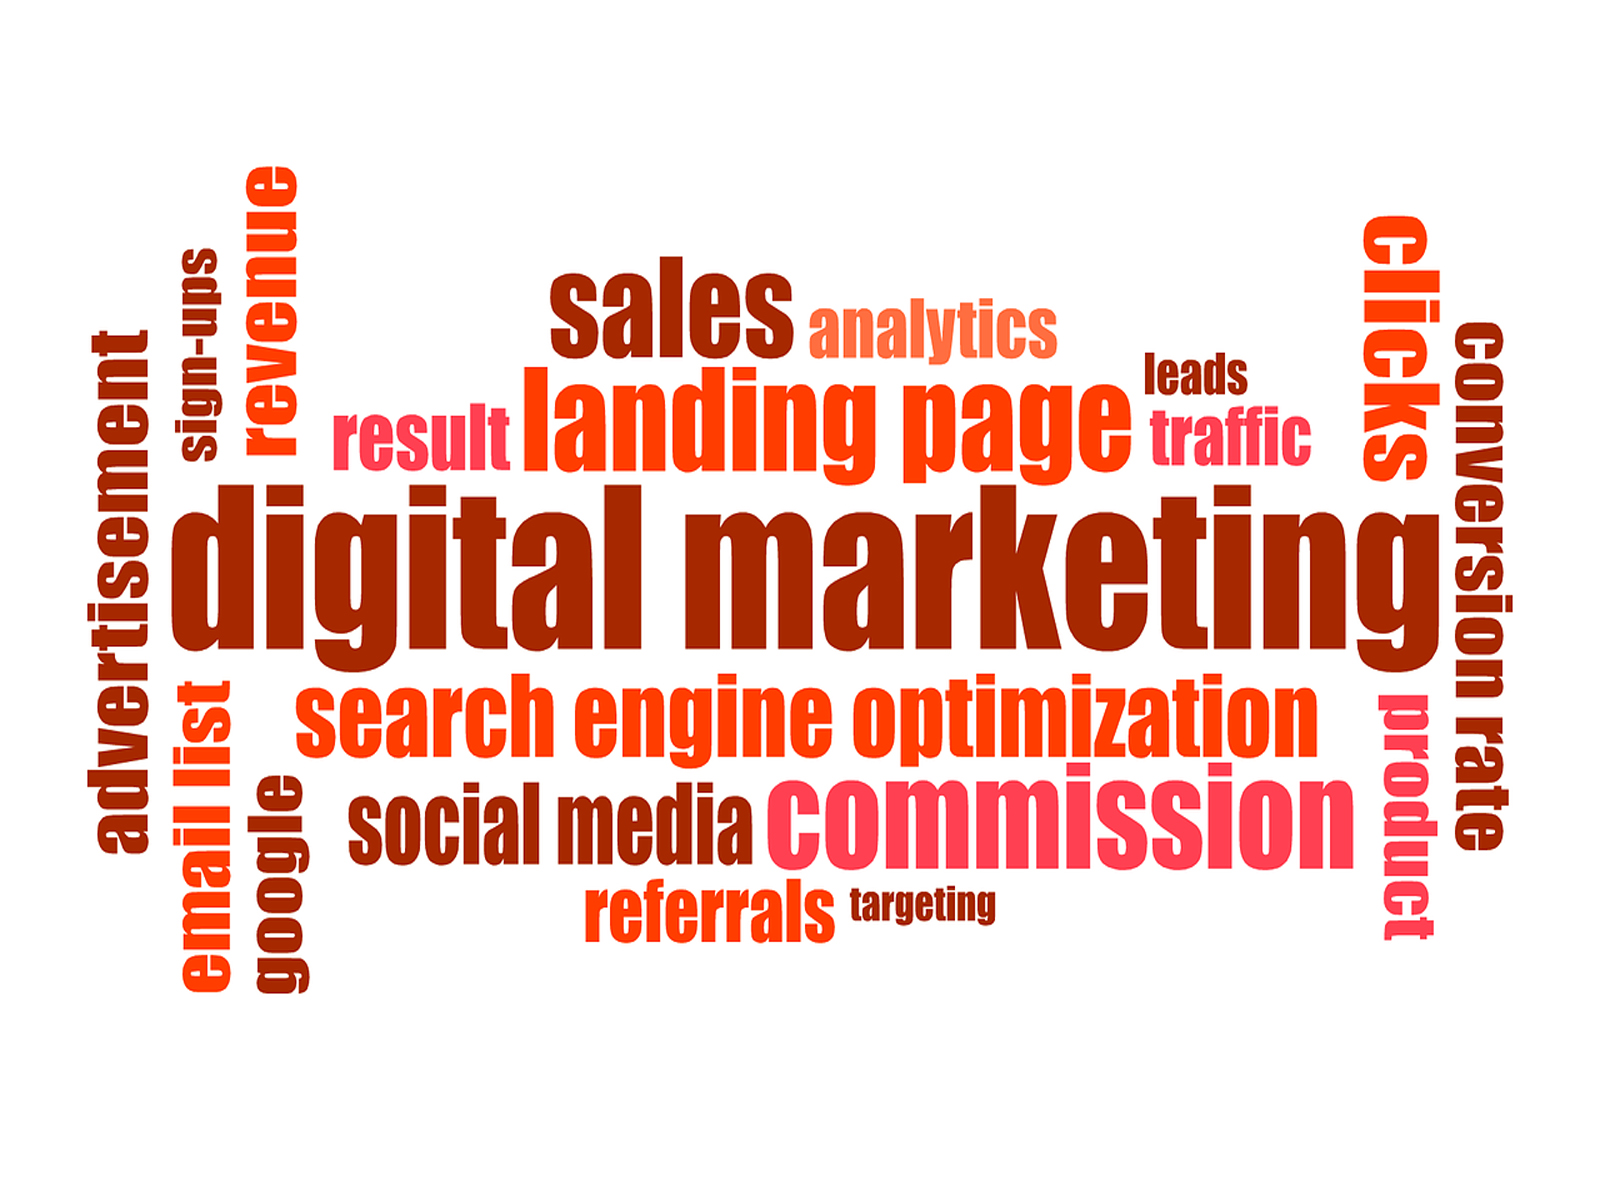 Why Need Digital Marketing for business